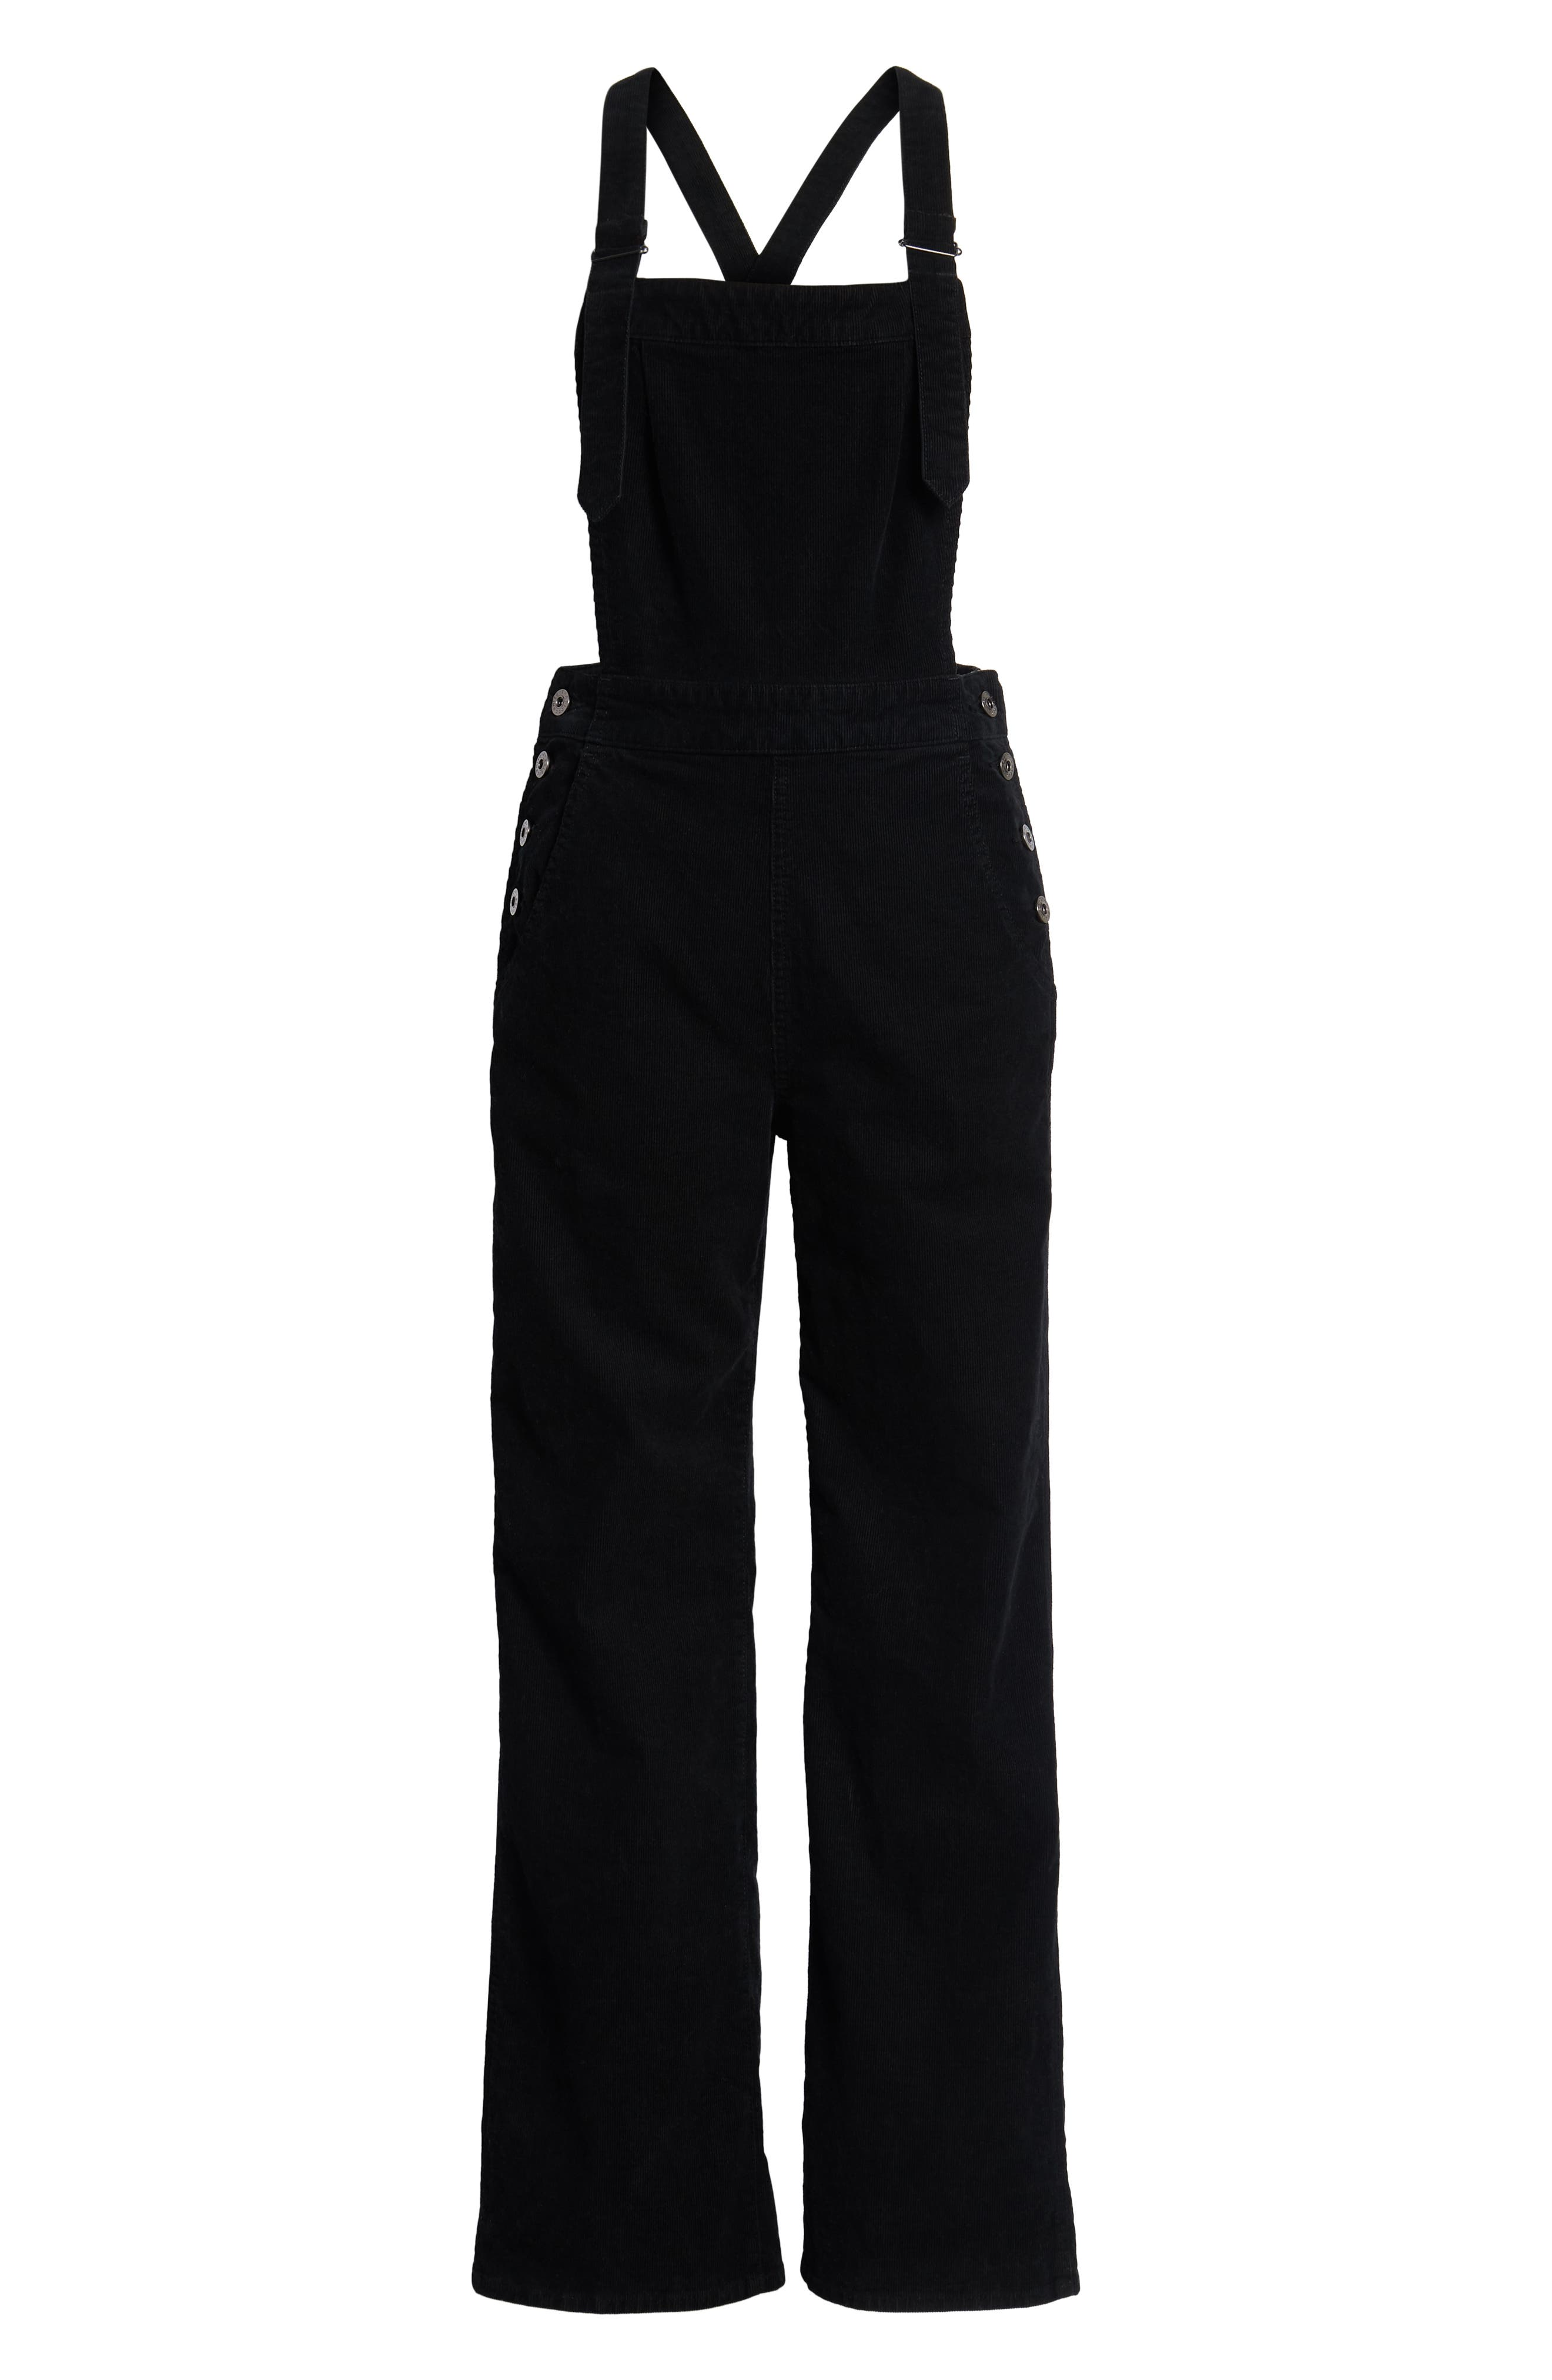 Gwendolyn Corduroy Overalls,                             Alternate thumbnail 7, color,                             018